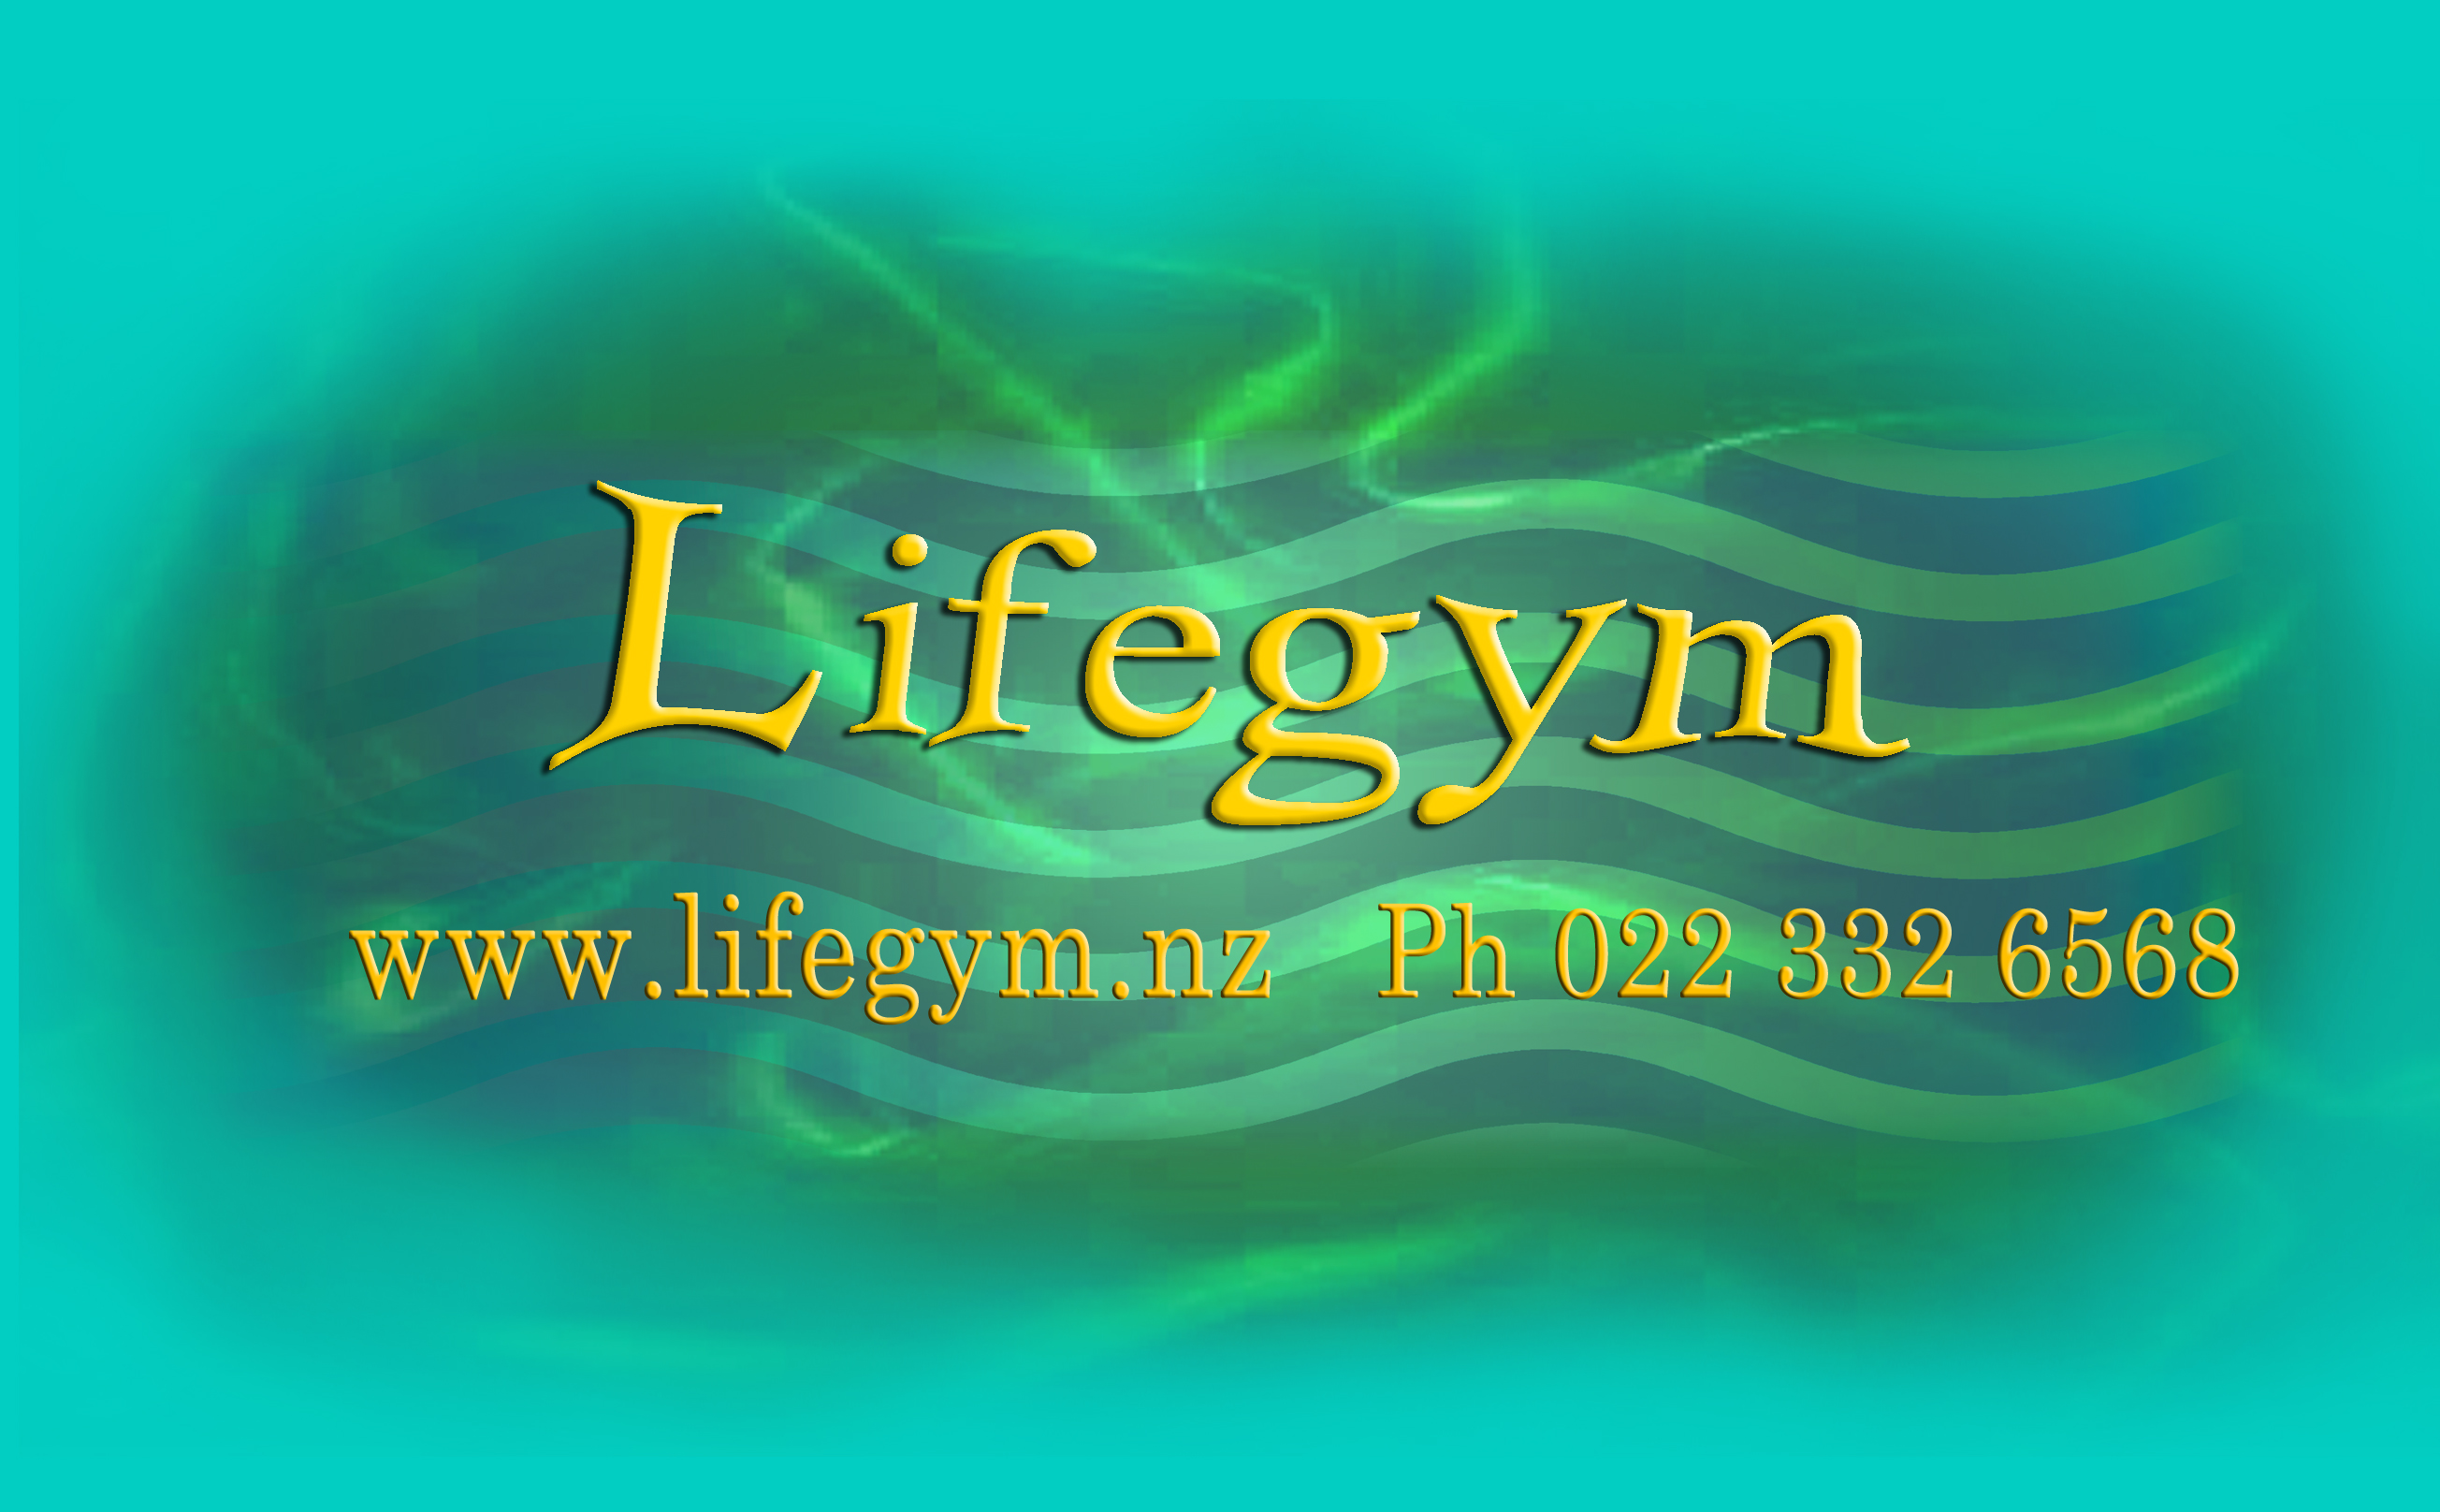 Lifegym card Aqua copy